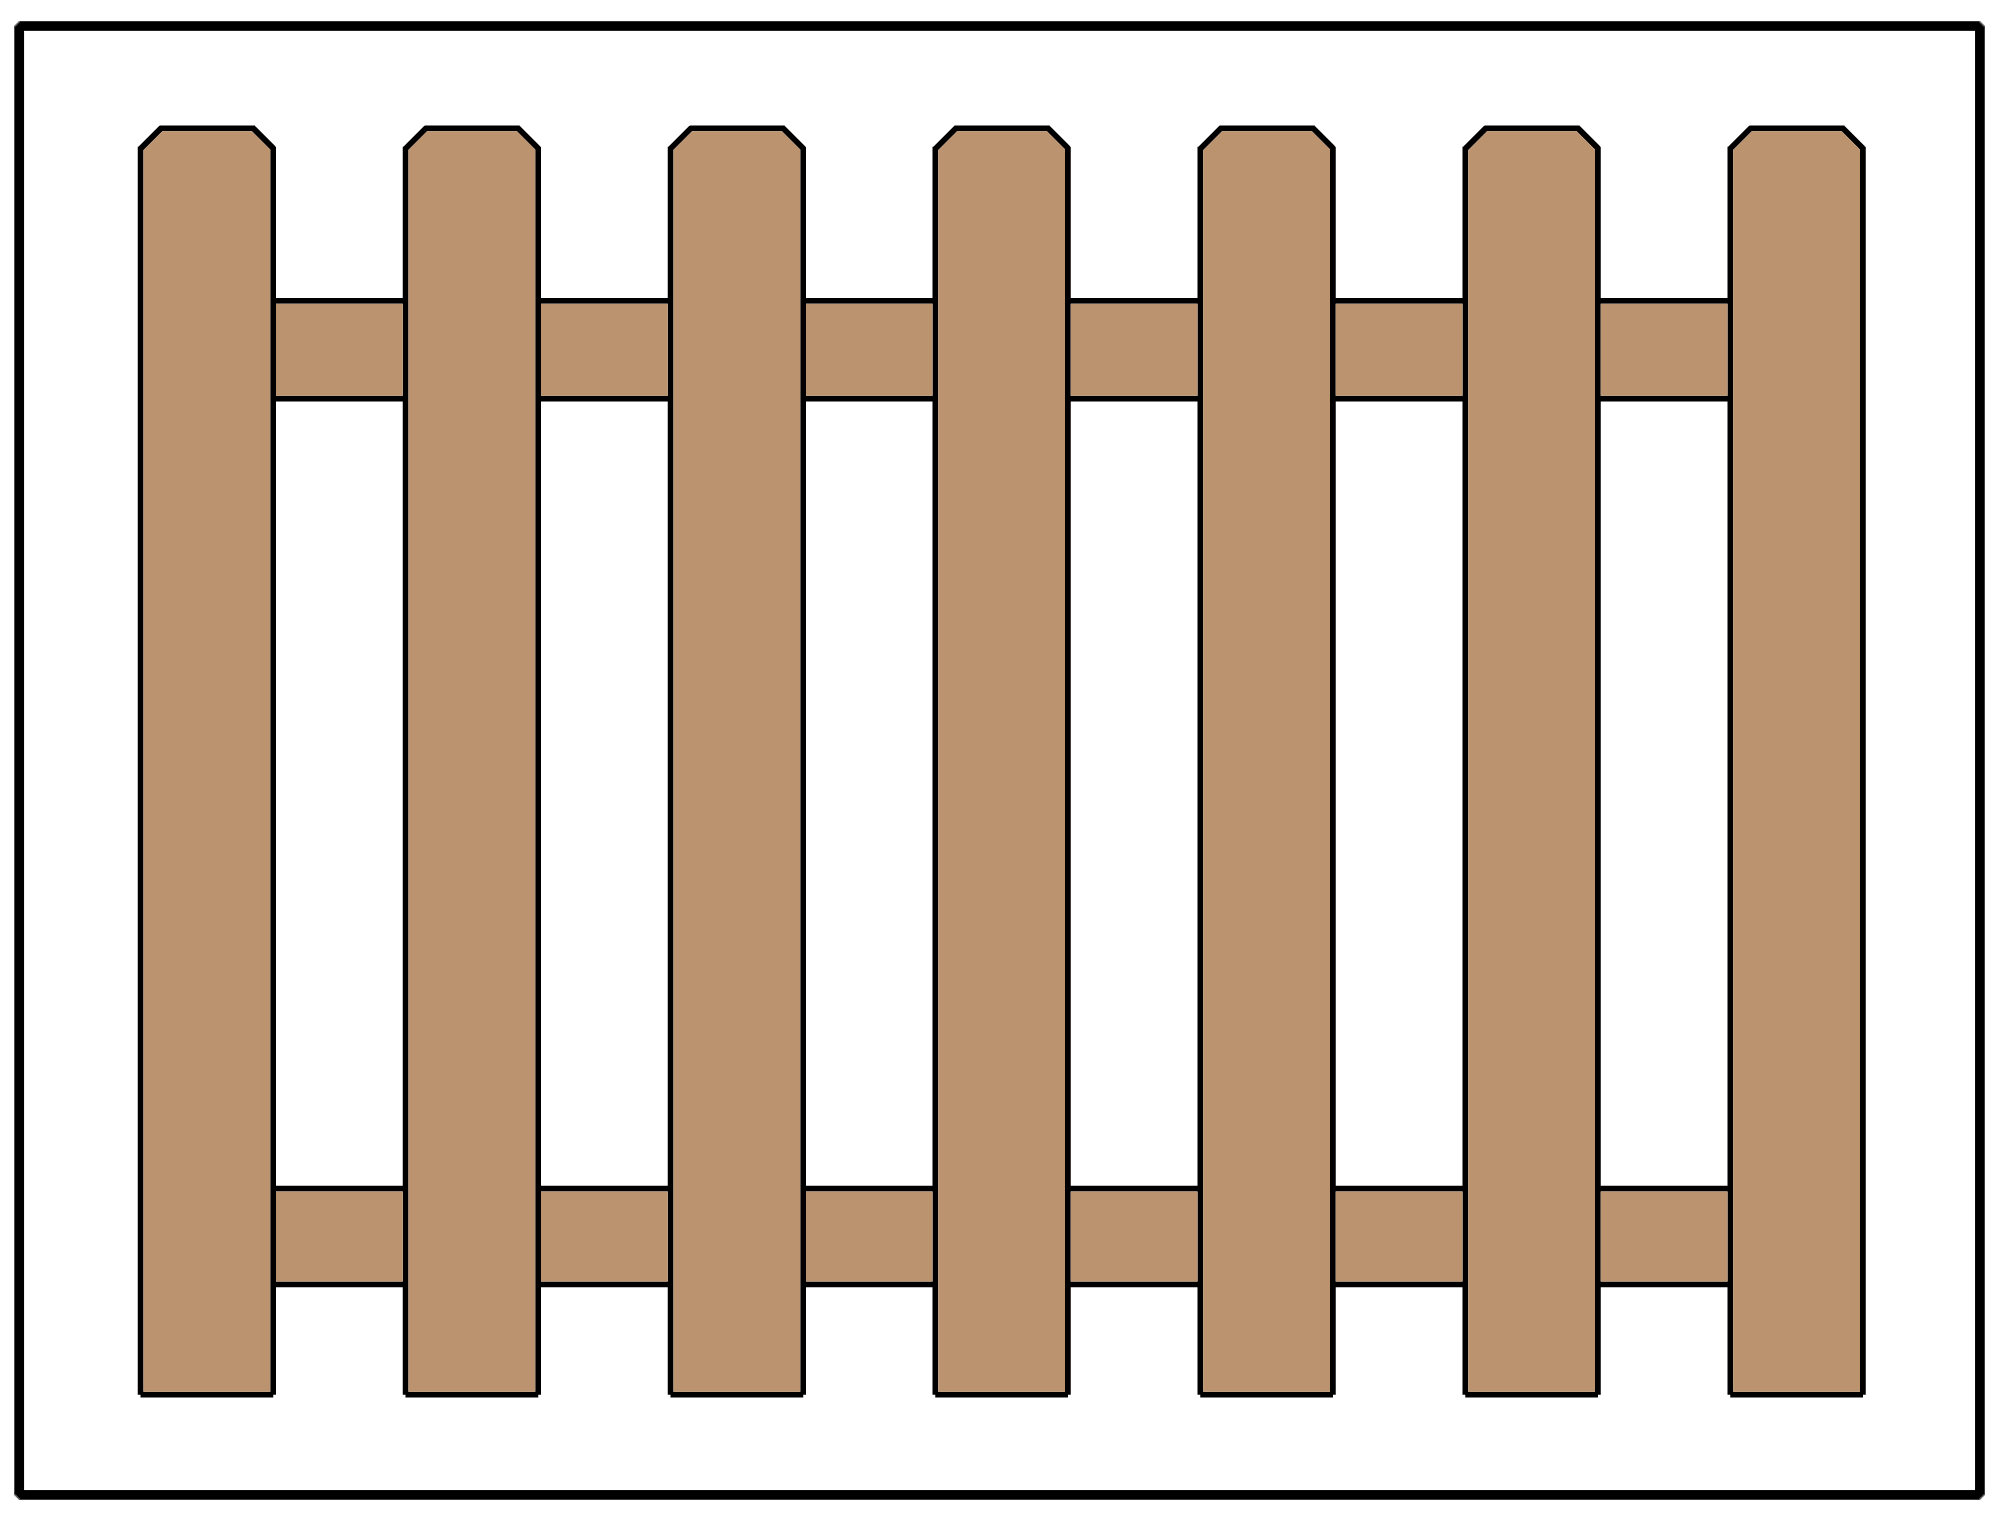 Picket fence design using dog ear pickets